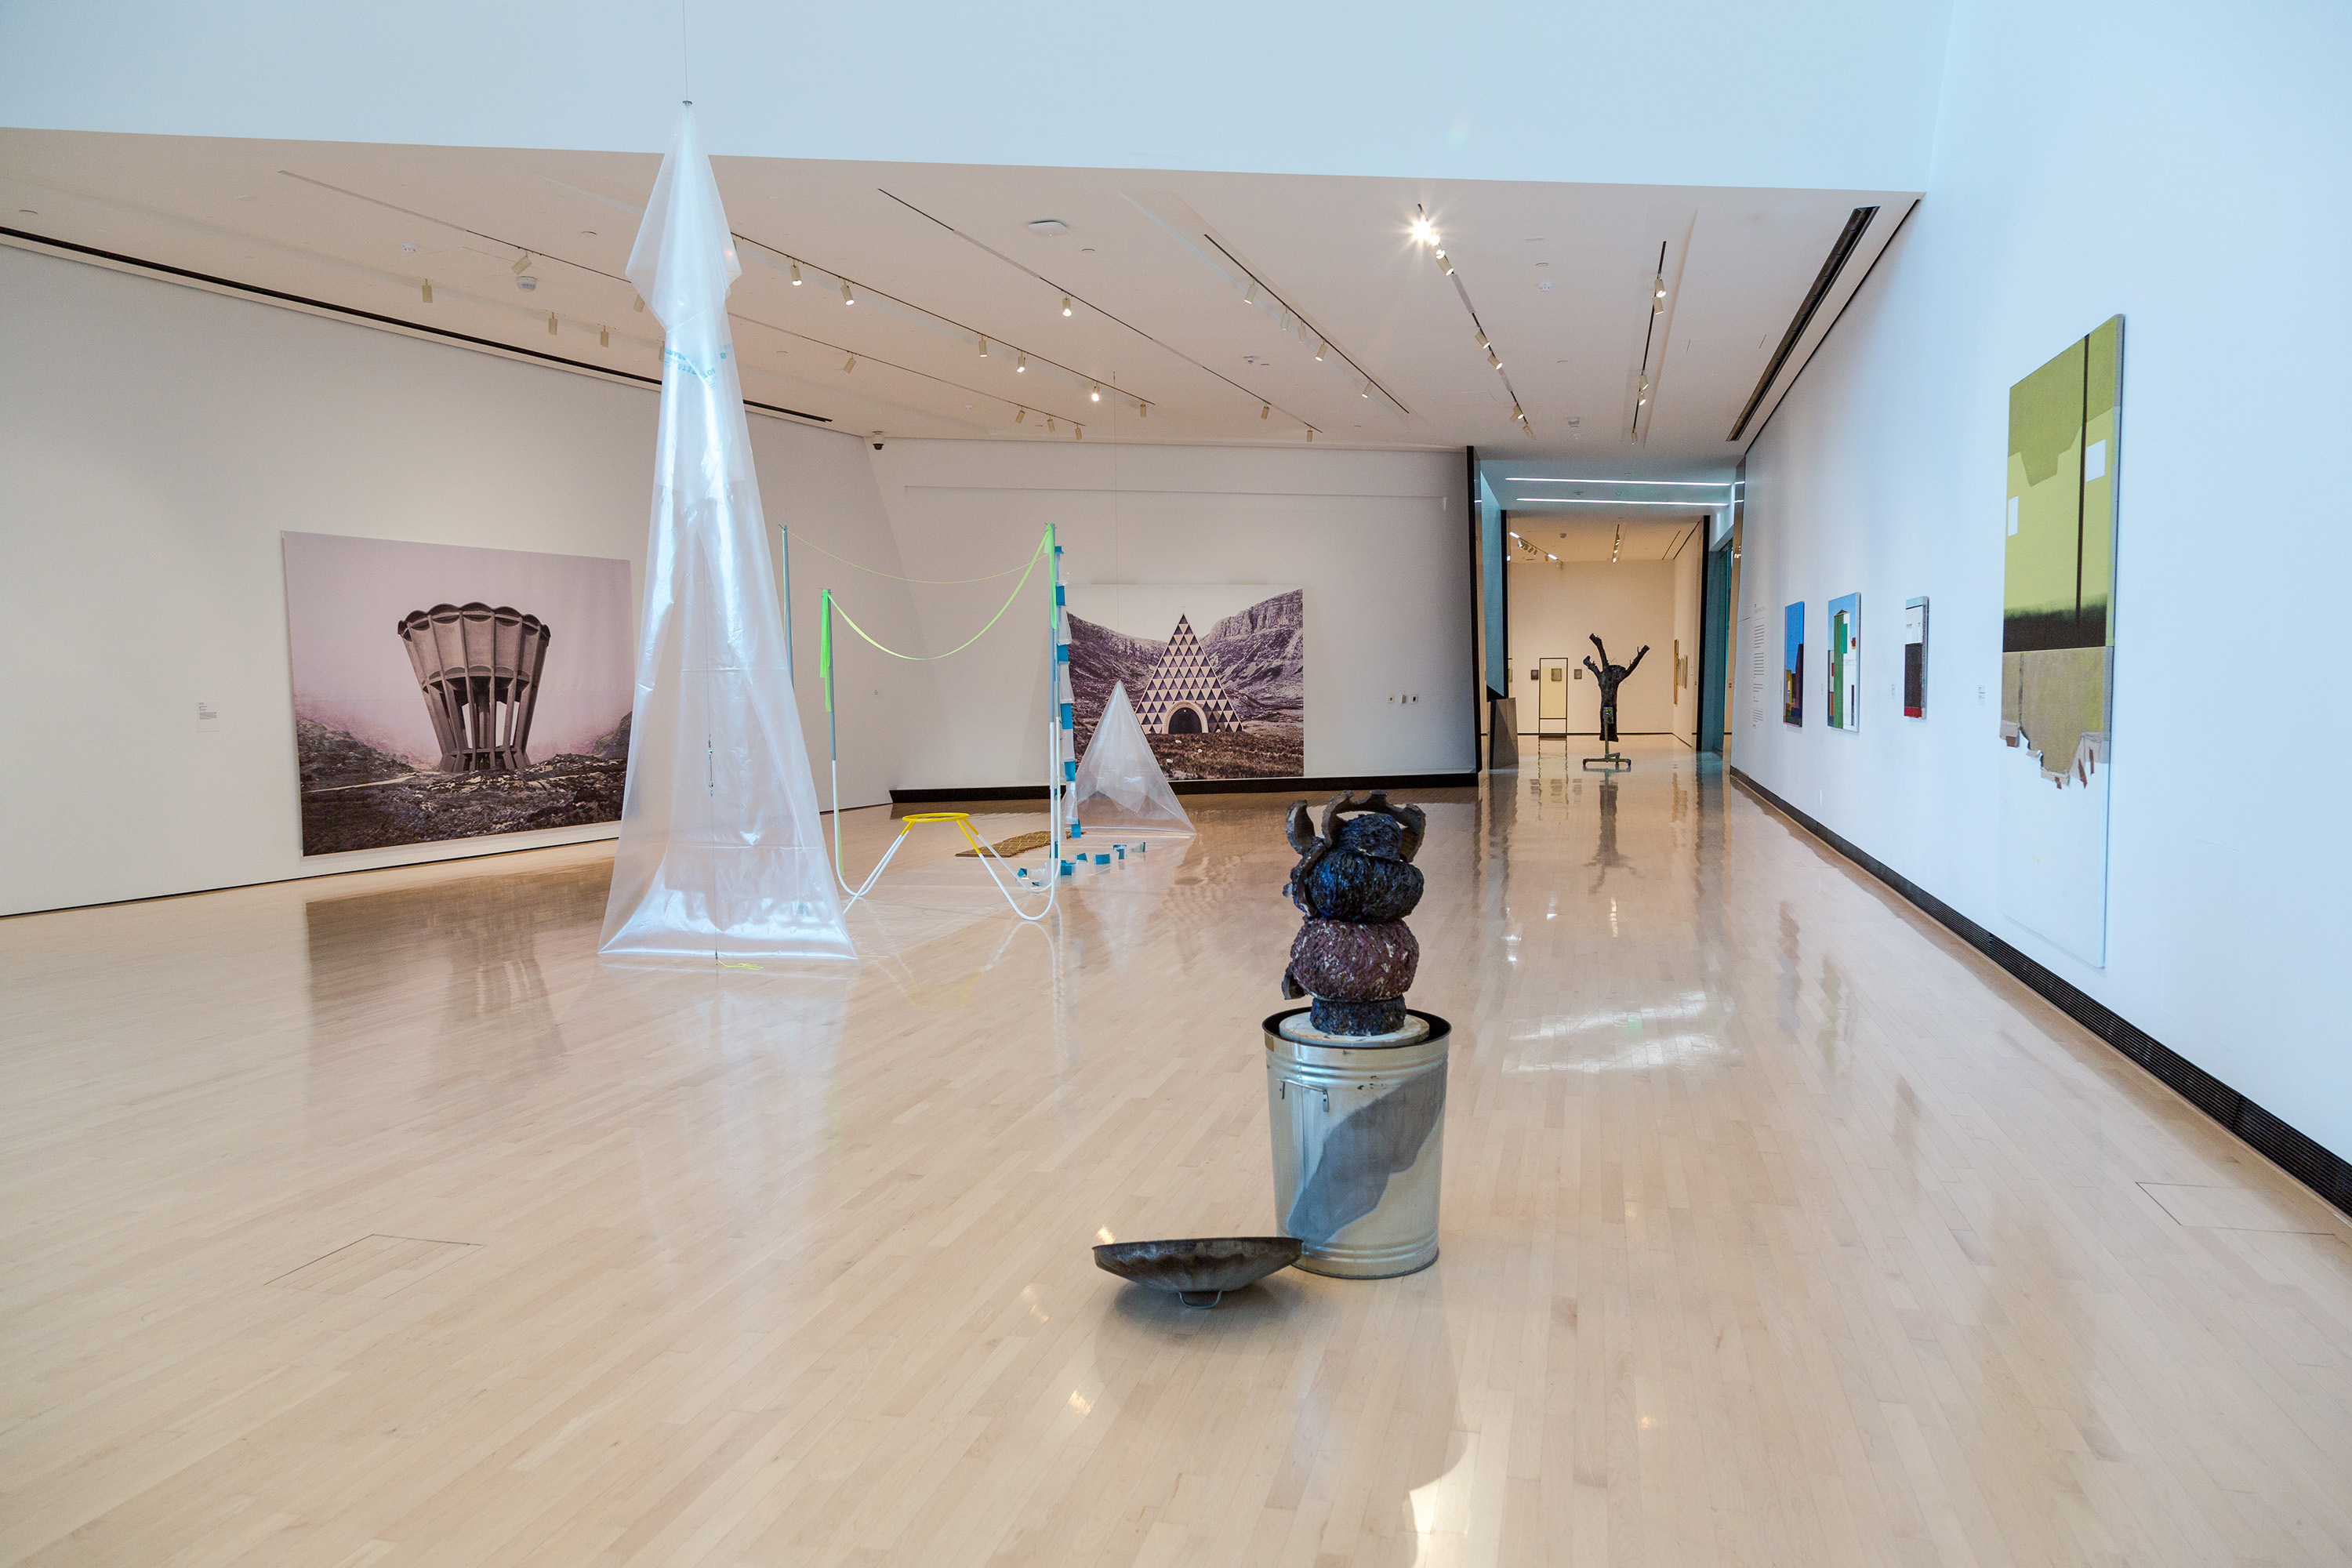 <i>2116: Forecast of the Next Century</i>, installation view at the Eli and Edythe Broad Art Museum at Michigan State University, 2016. Photo: MSU Broad